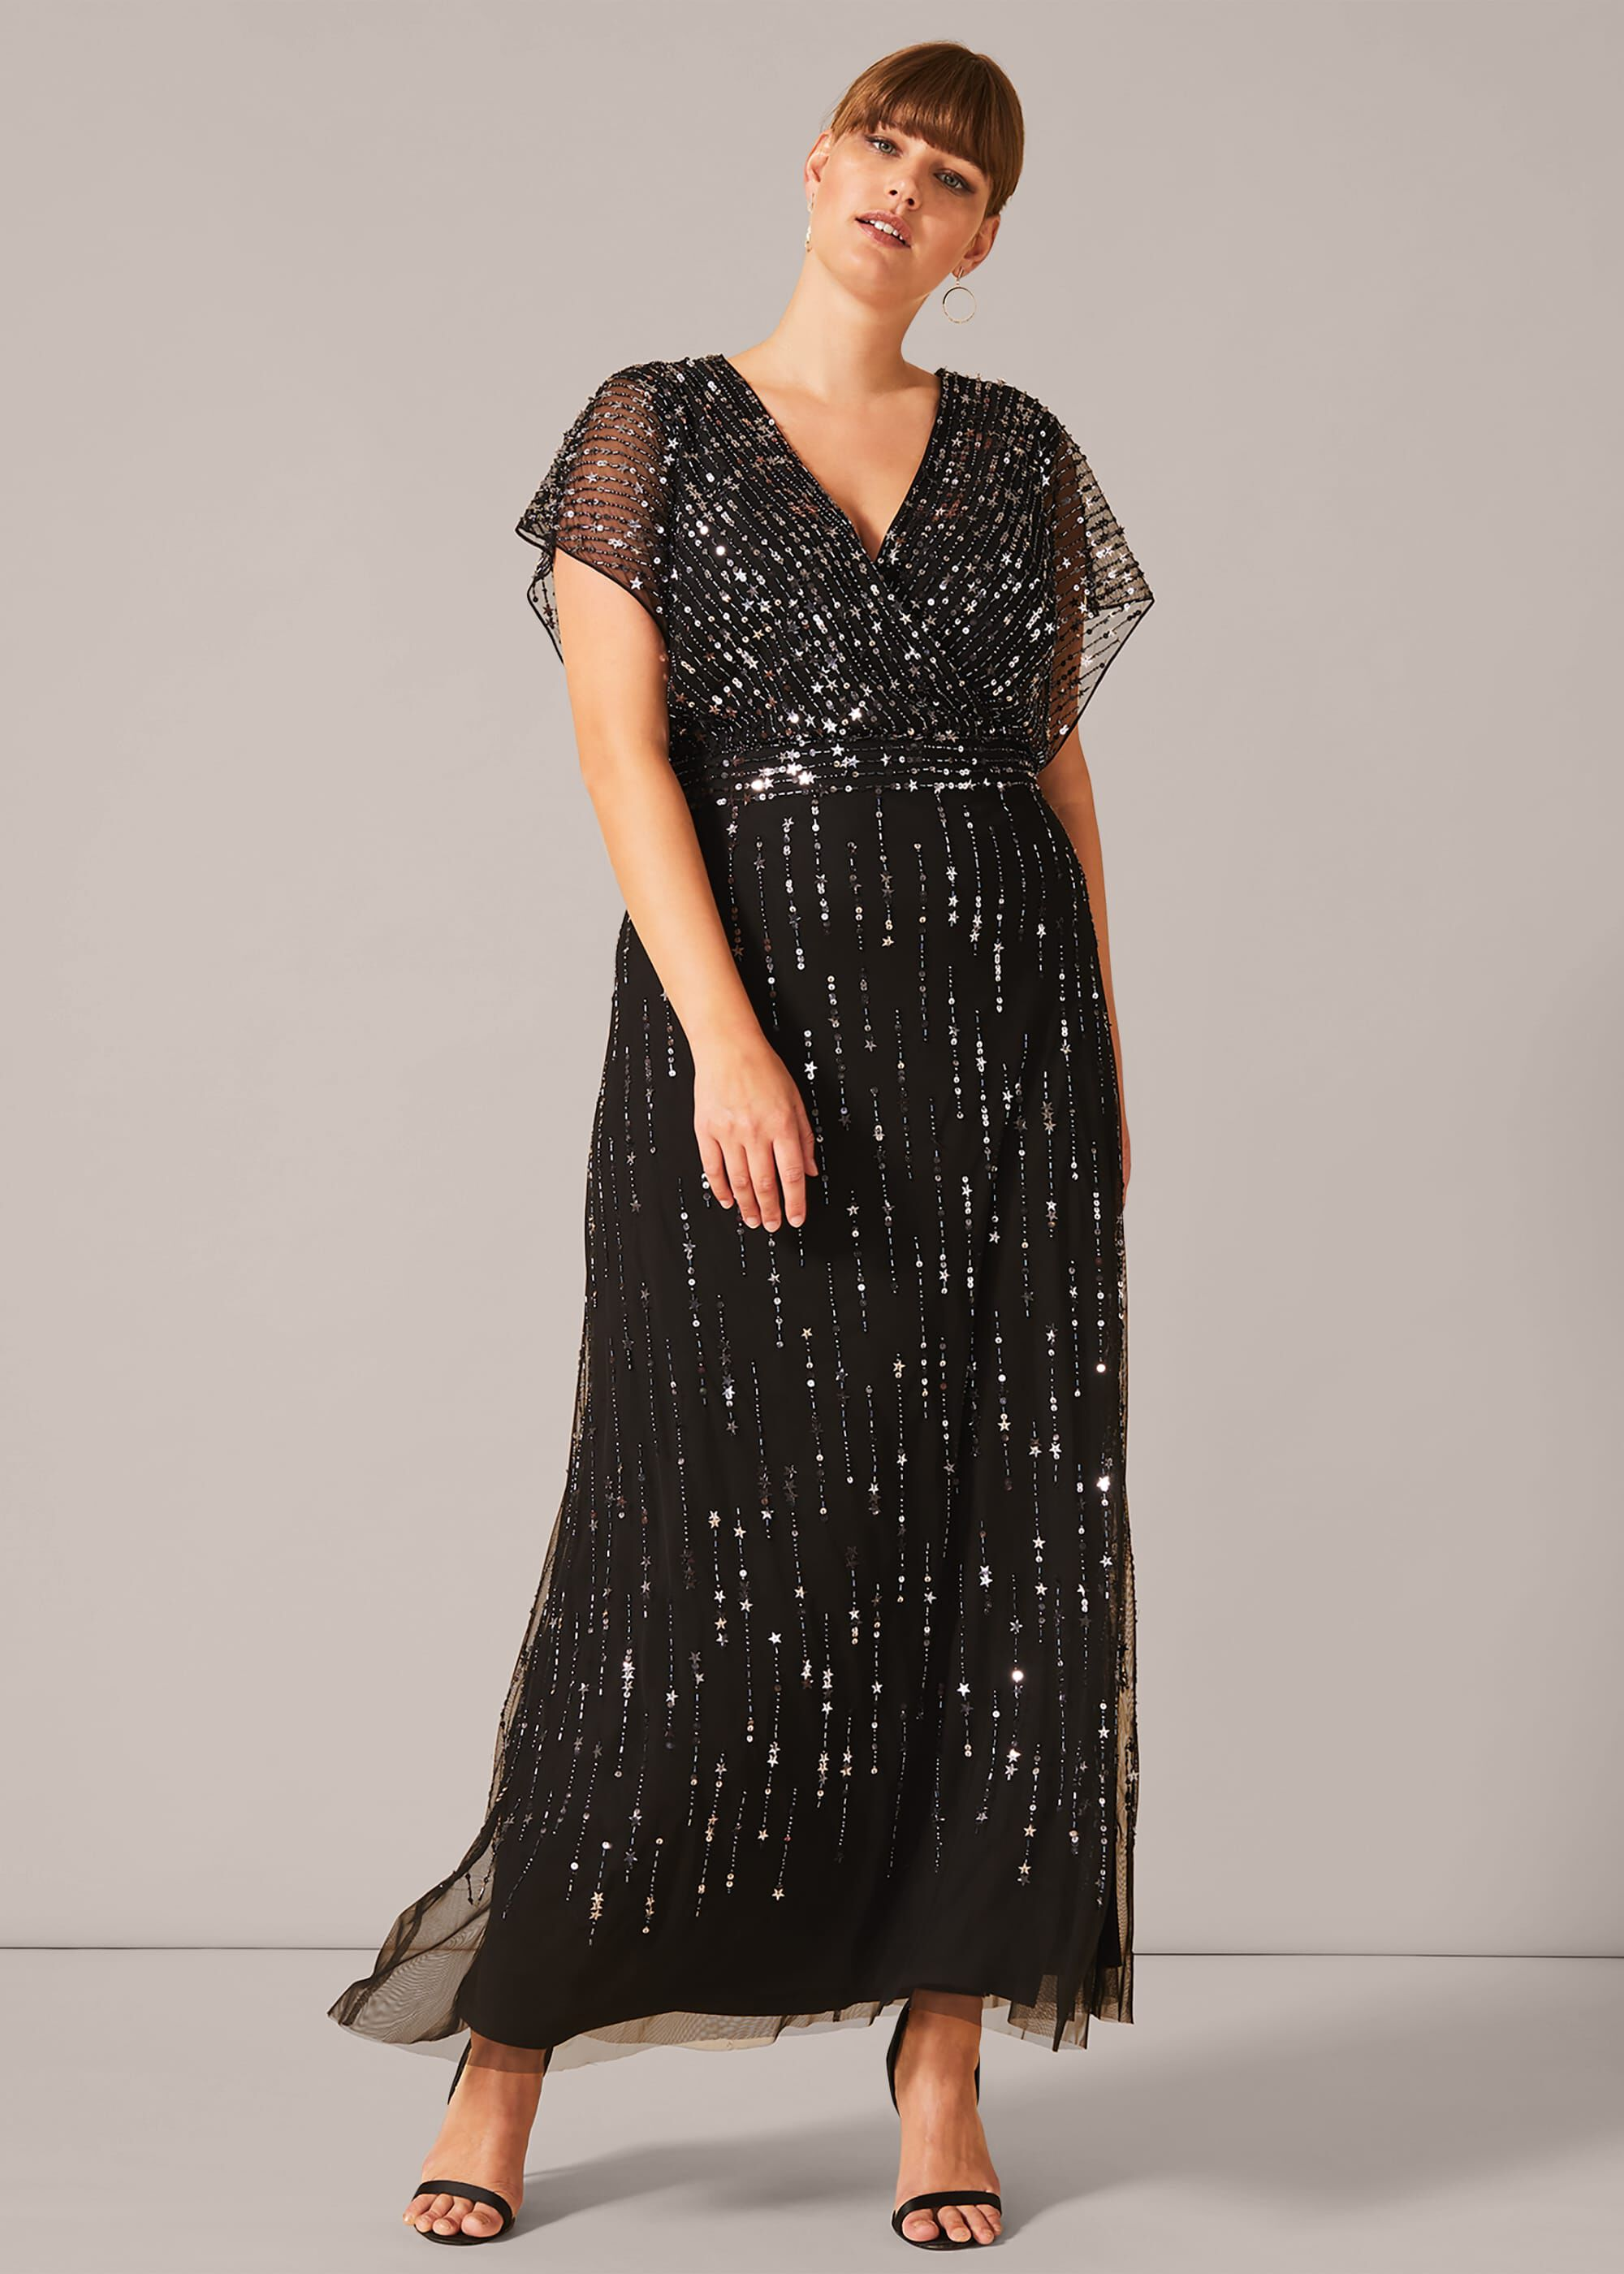 1920s Dresses UK | Flapper, Gatsby, Downton Abbey Dress Studio 8 Shante Sequin Maxi Dress Black Maxi Occasion Dress £147.00 AT vintagedancer.com